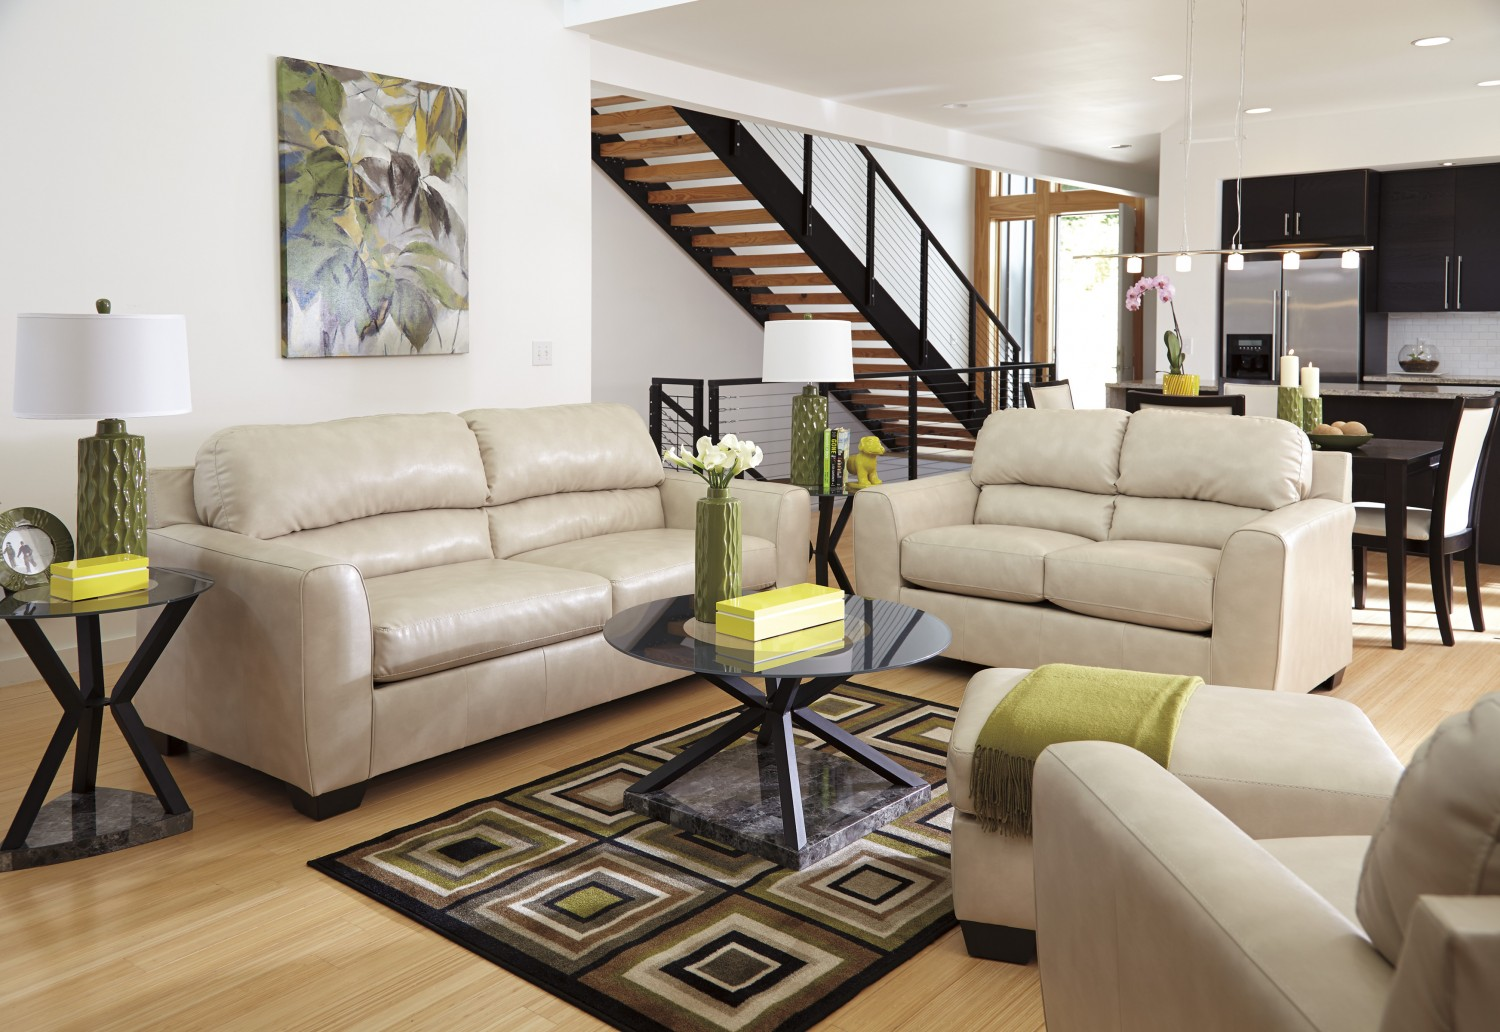 2015 Trending Living Room Design Tips